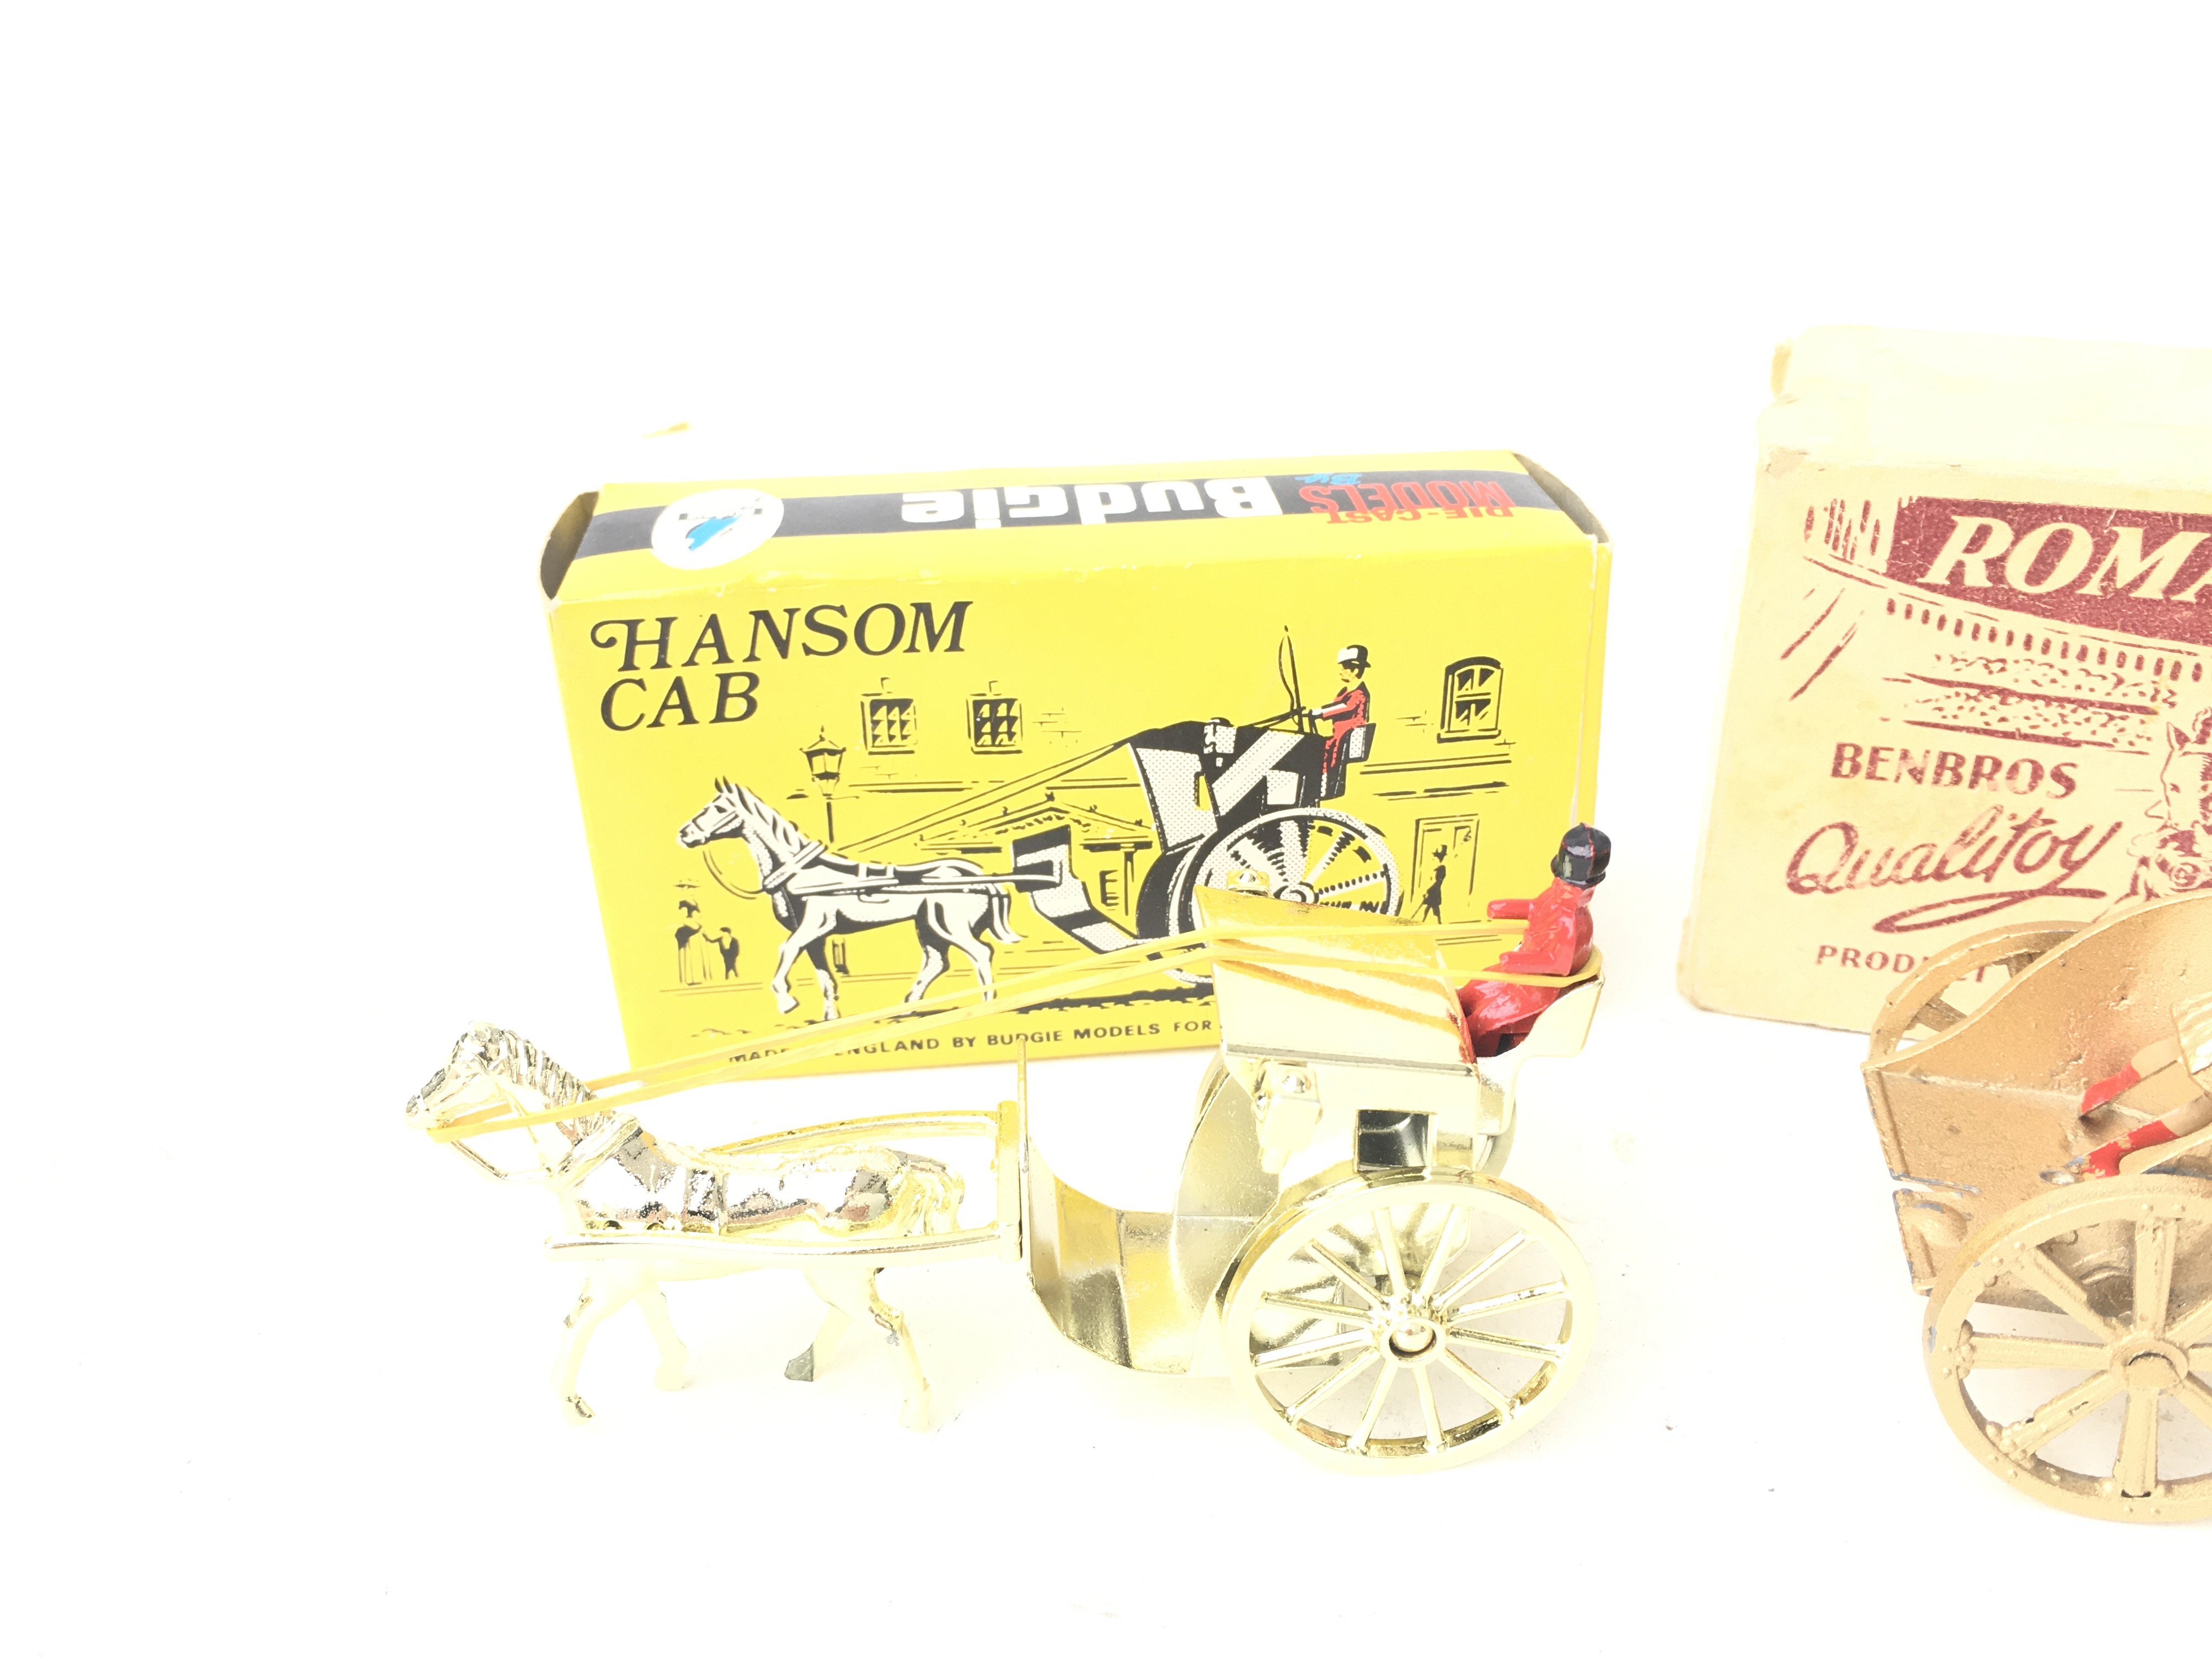 A Boxed Budgie Hanson Cab and a BenBros Boxed Roman Chariot. - Image 2 of 3